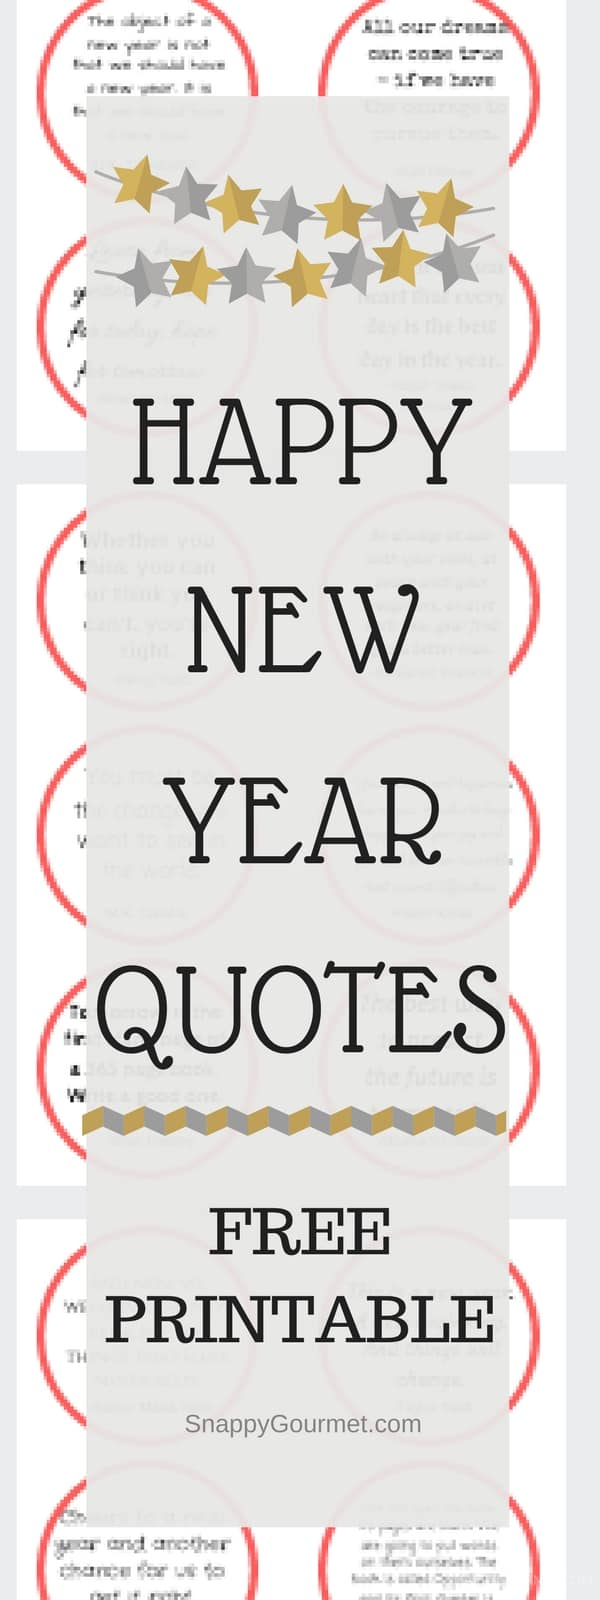 Happy New Year Quotes - free printable of happy and inspirational new year quotes. SnappyGourmet.com